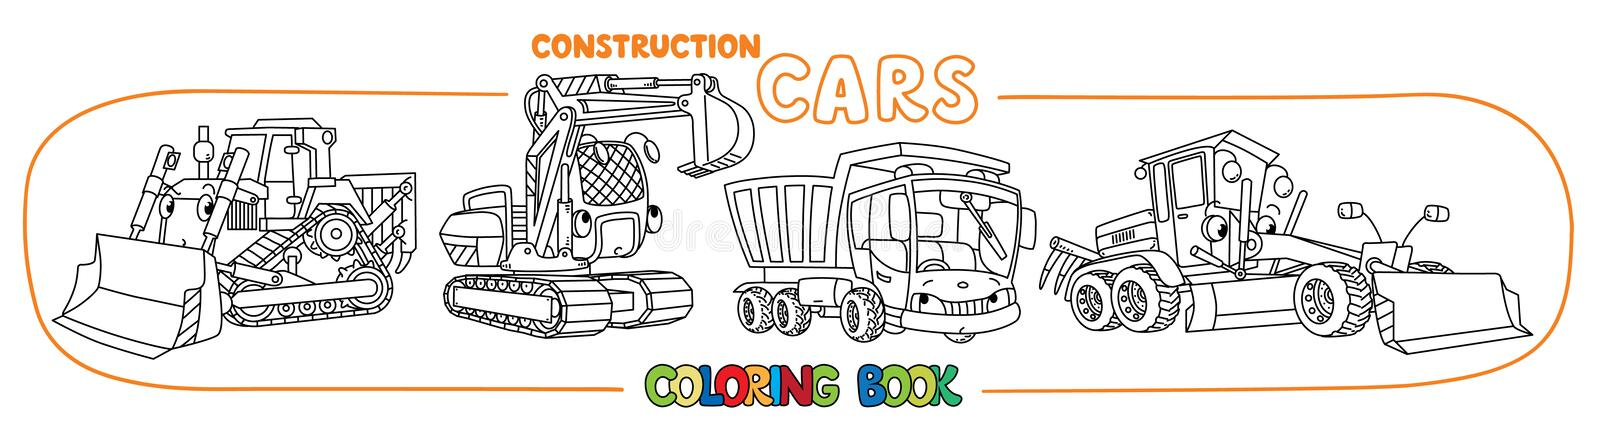 Construction machinery transport coloring book stock illustration